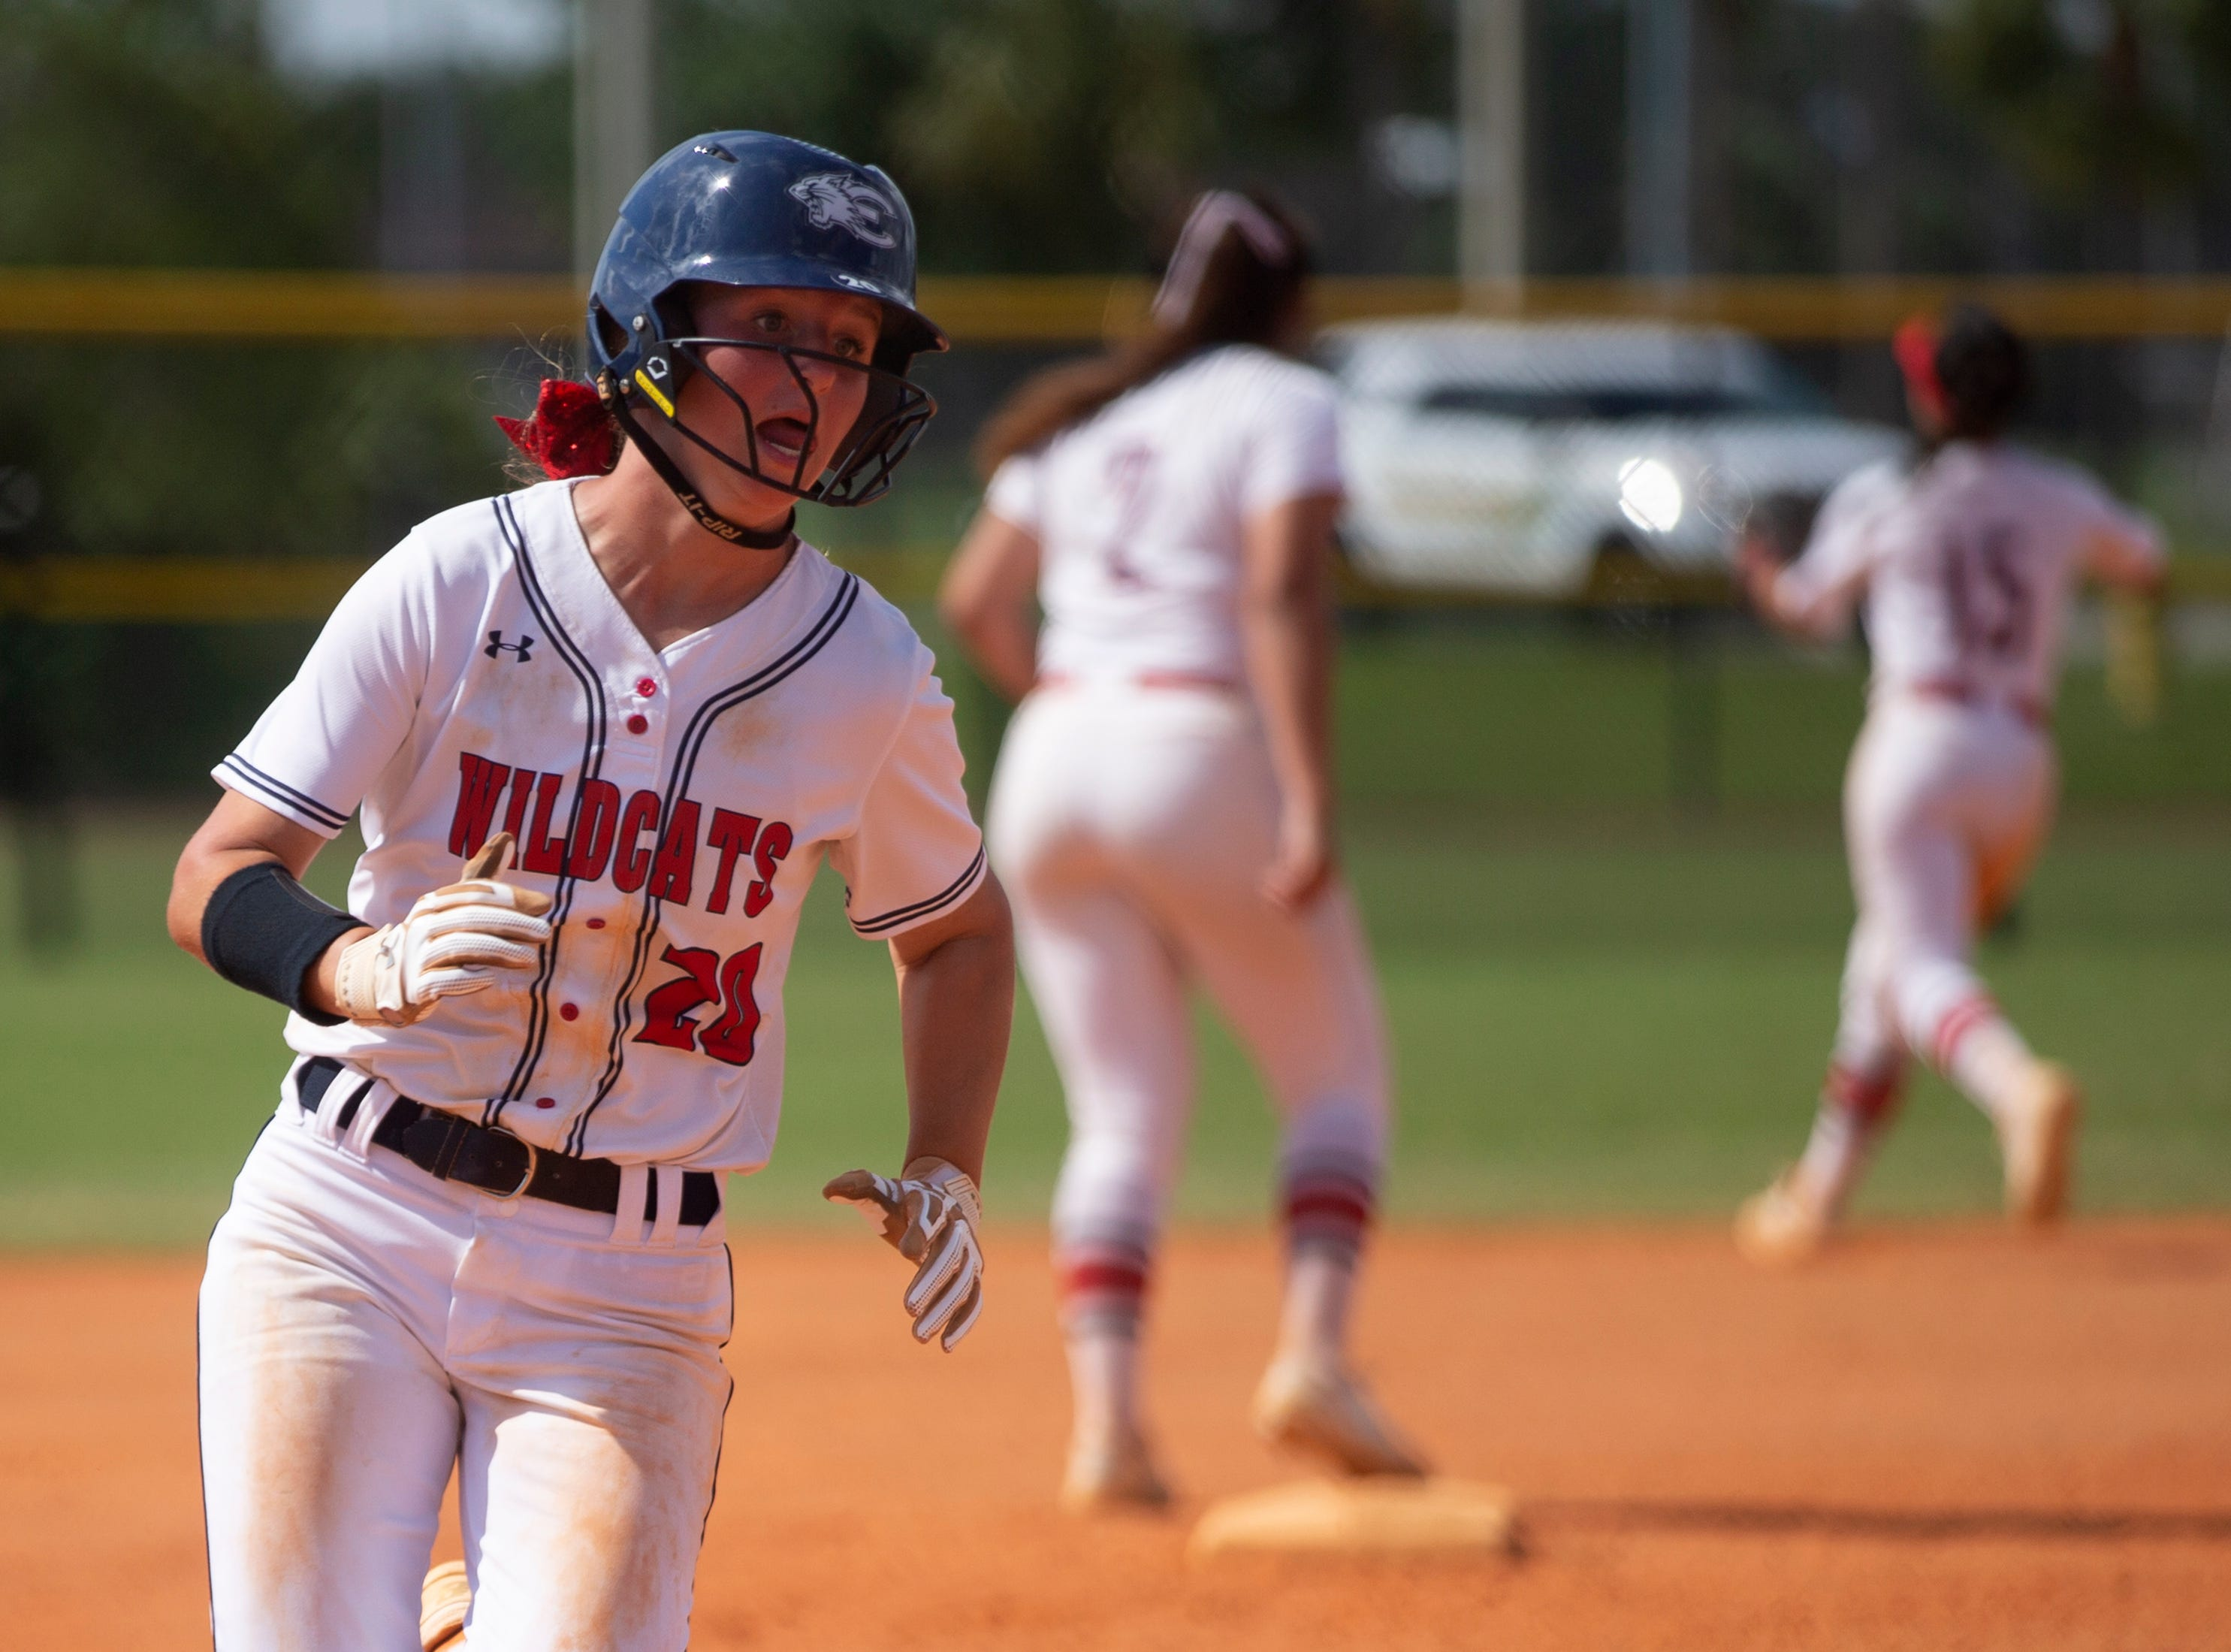 Estero's Lauren Hobbs scores a run against Dural Academy during the Longshore Memorial softball tournament, Saturday, April 13, 2019, at North Collier Regional Park in North Naples.